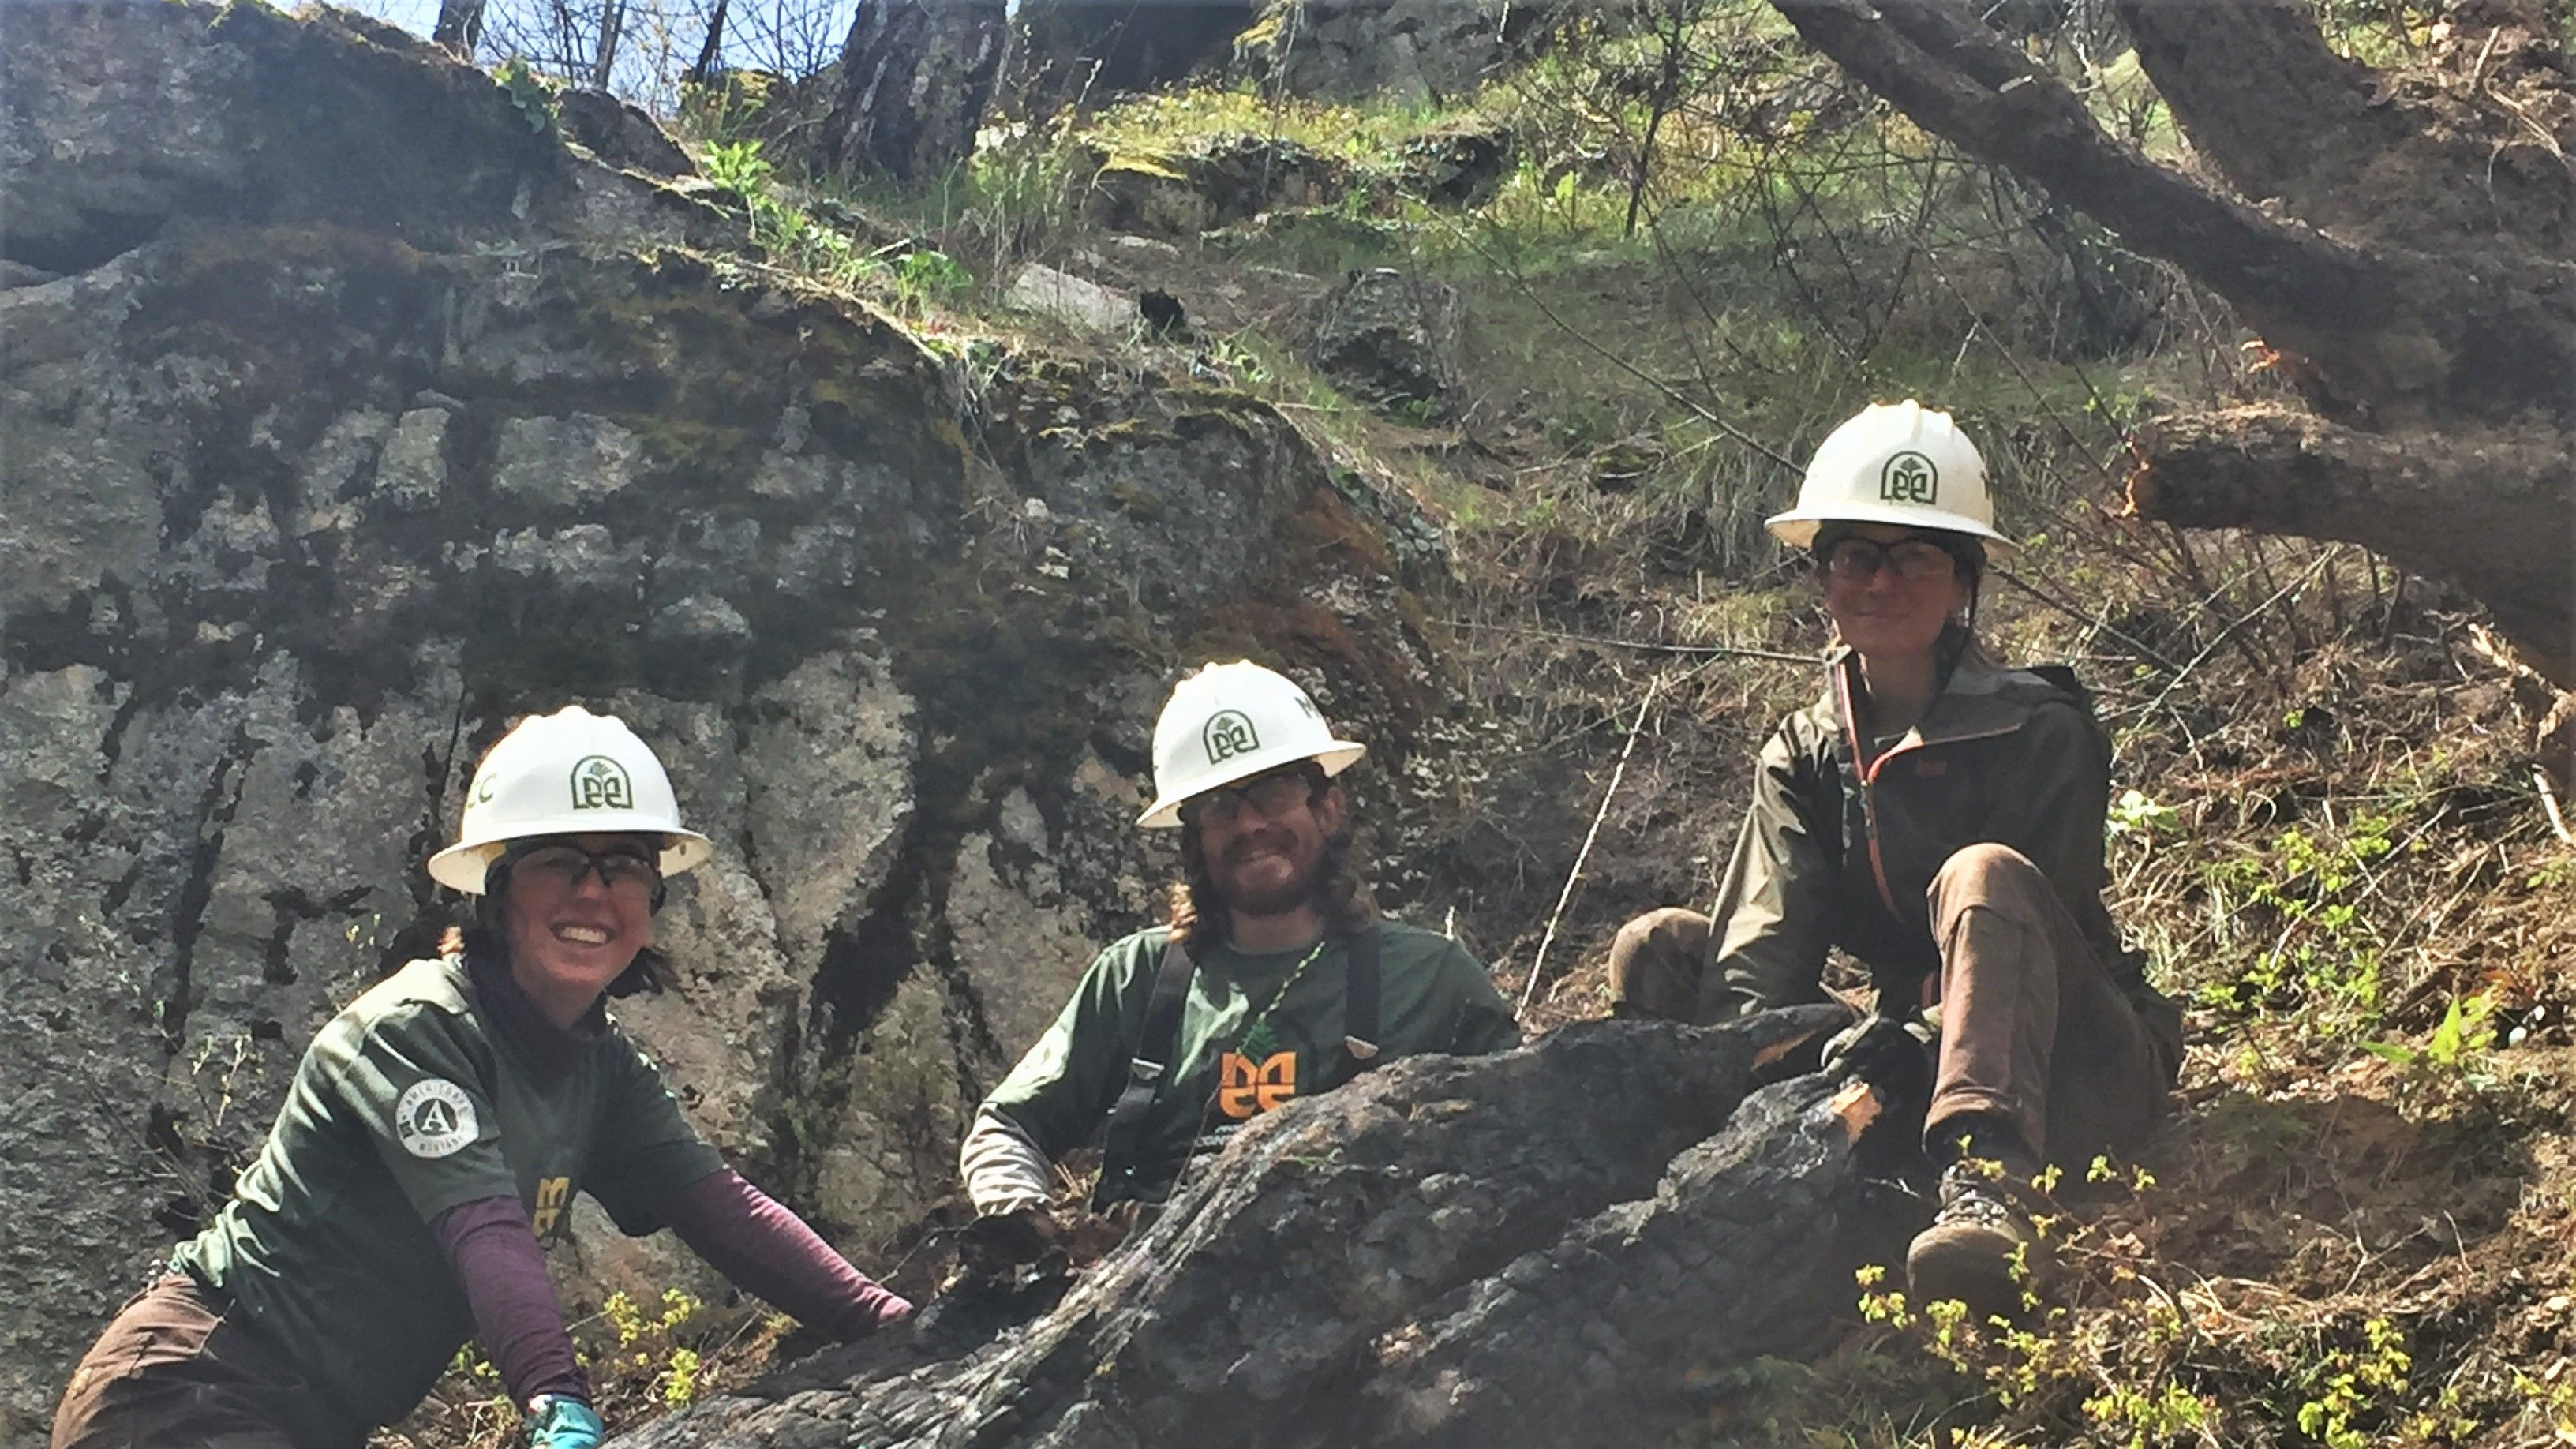 Three crew members with white MCC helmets smiling and standing on a hill loving getting outside